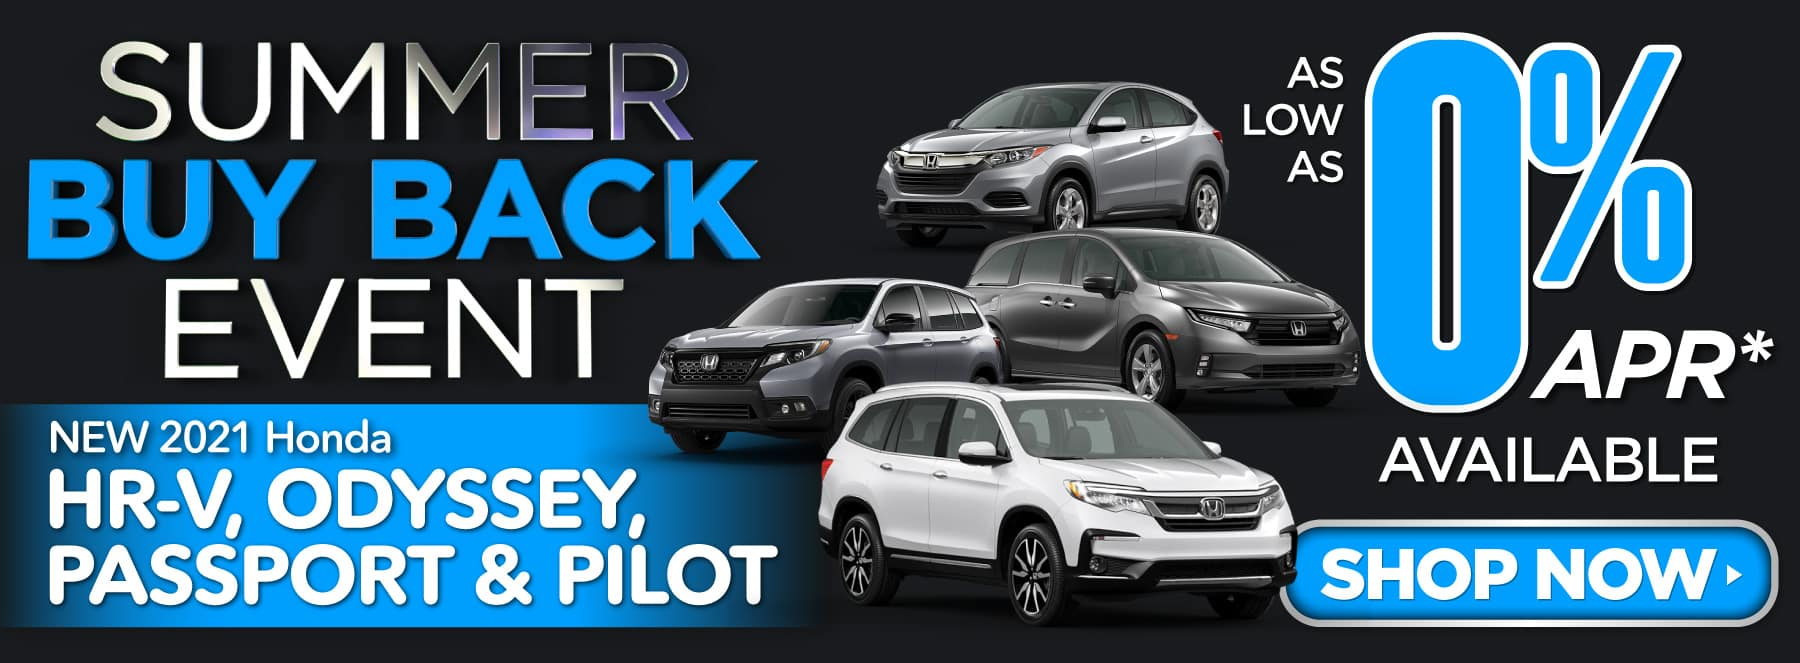 New 2021 Honda HR-V, Odyssey, Passport and Pilot - As low as 0% APR Available - Shop Now